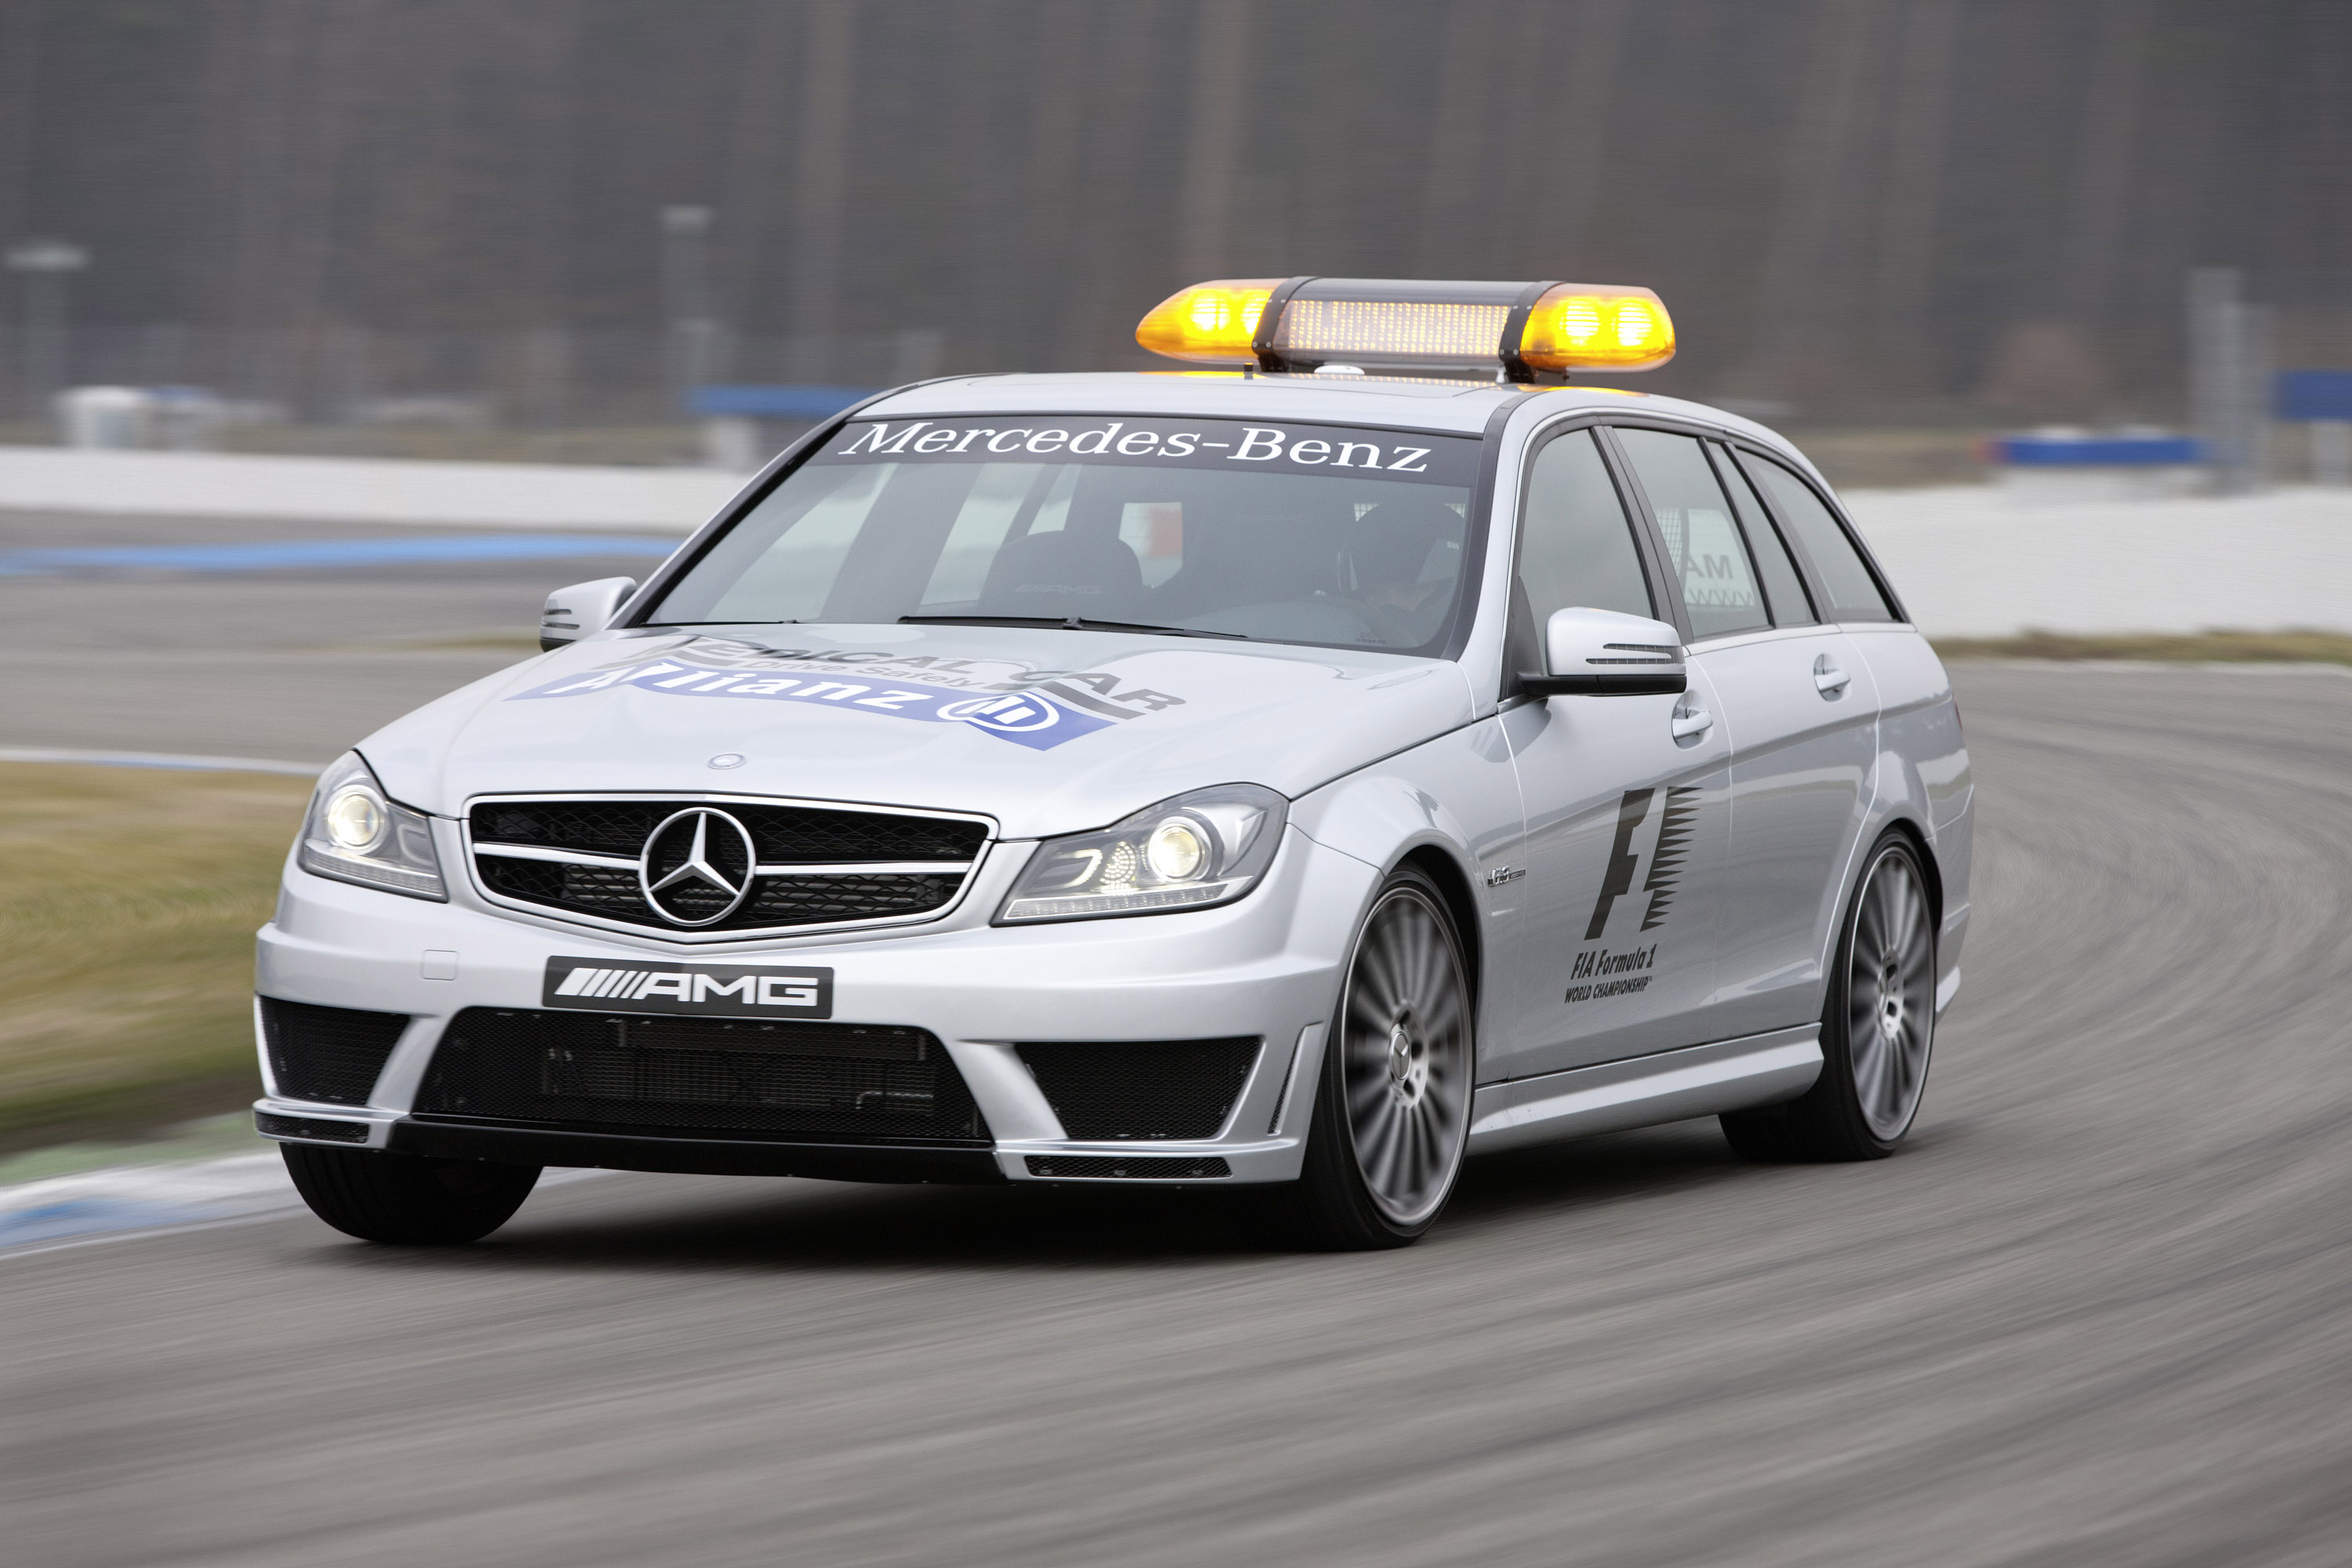 2012 mercedes benz c 63 amg and sls amg safety cars